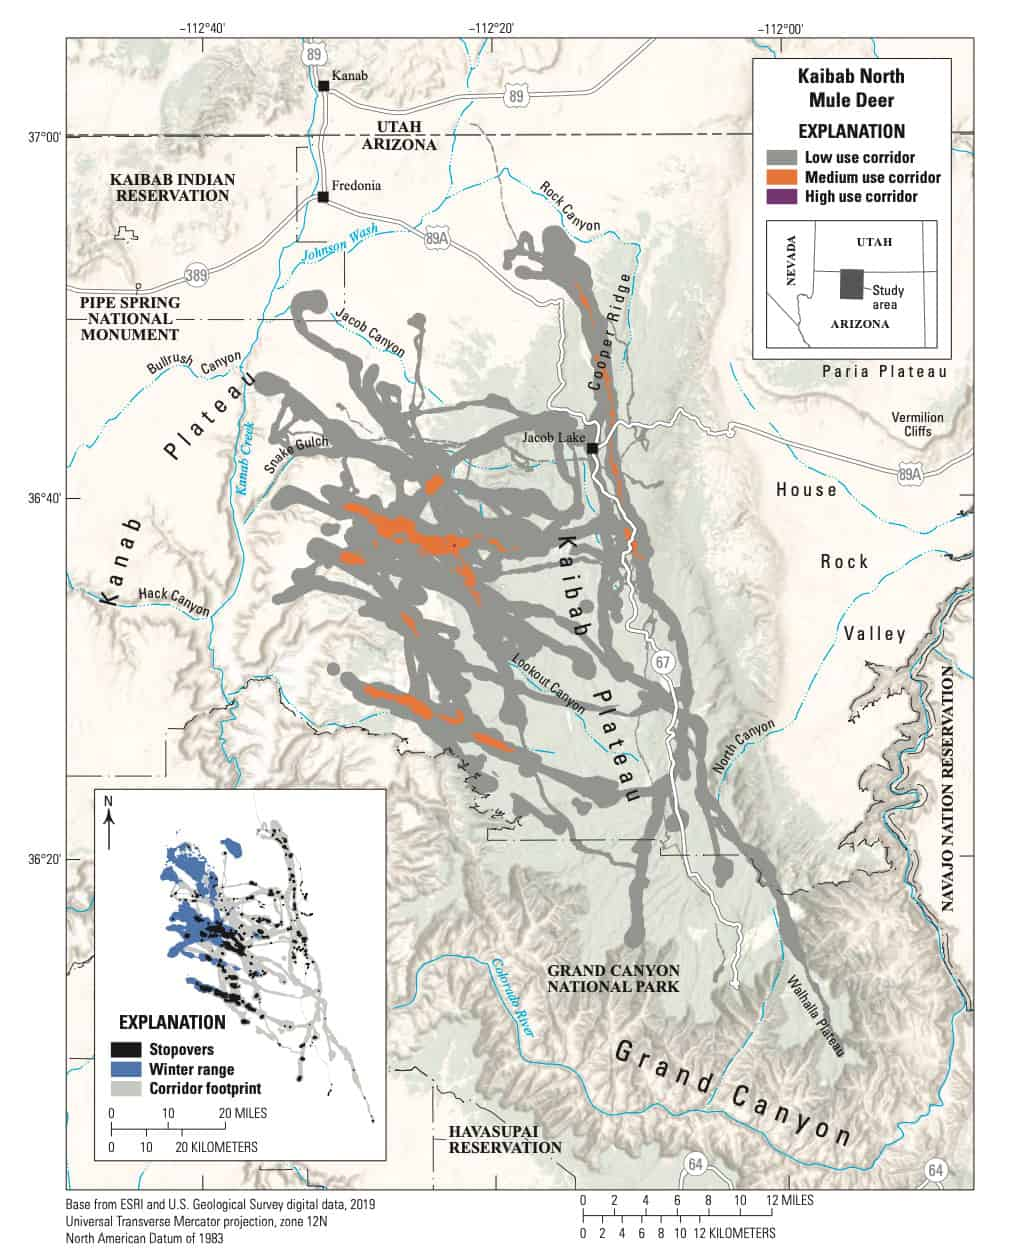 Migration corridors, stopovers, and winter ranges of the Kaibab North mule deer herd. Map: USGS.